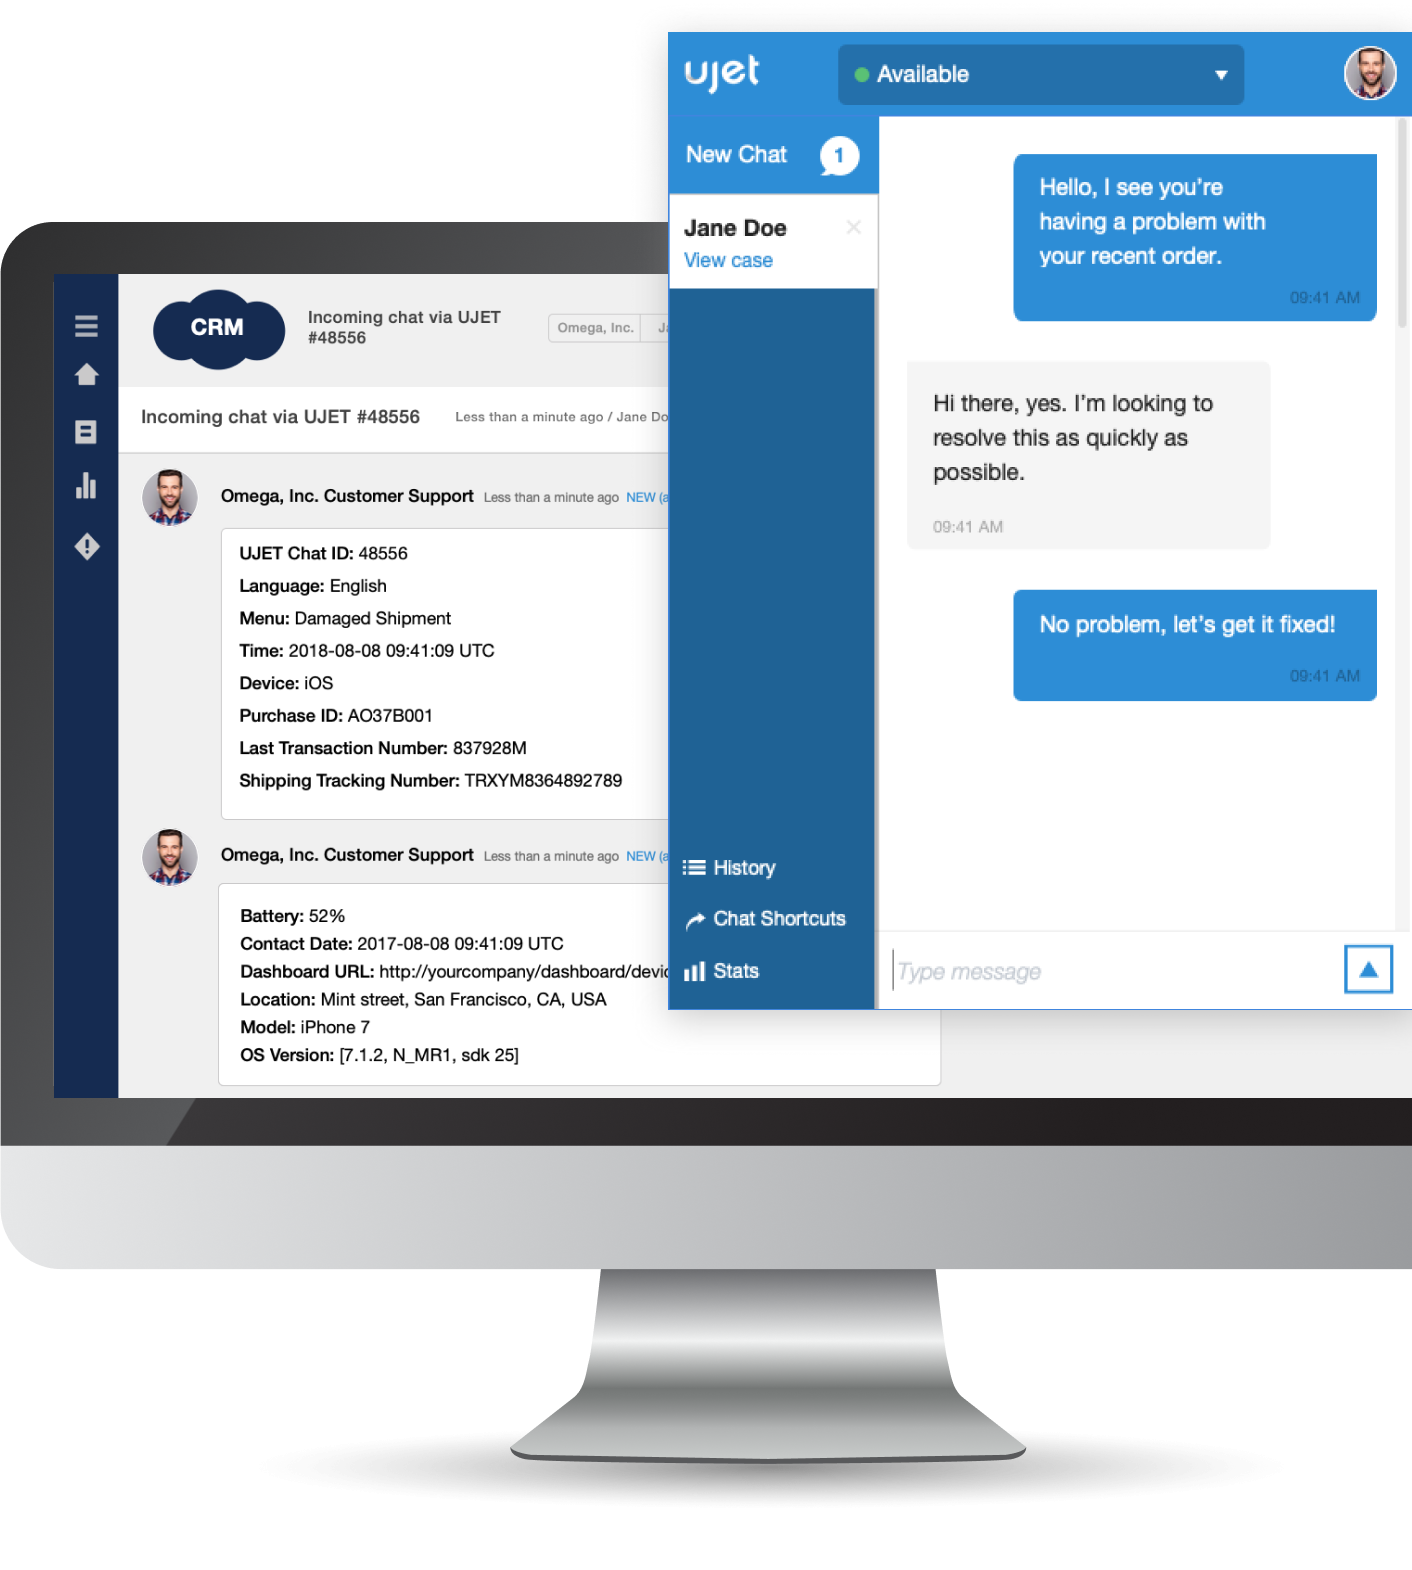 UJET agent's chat view